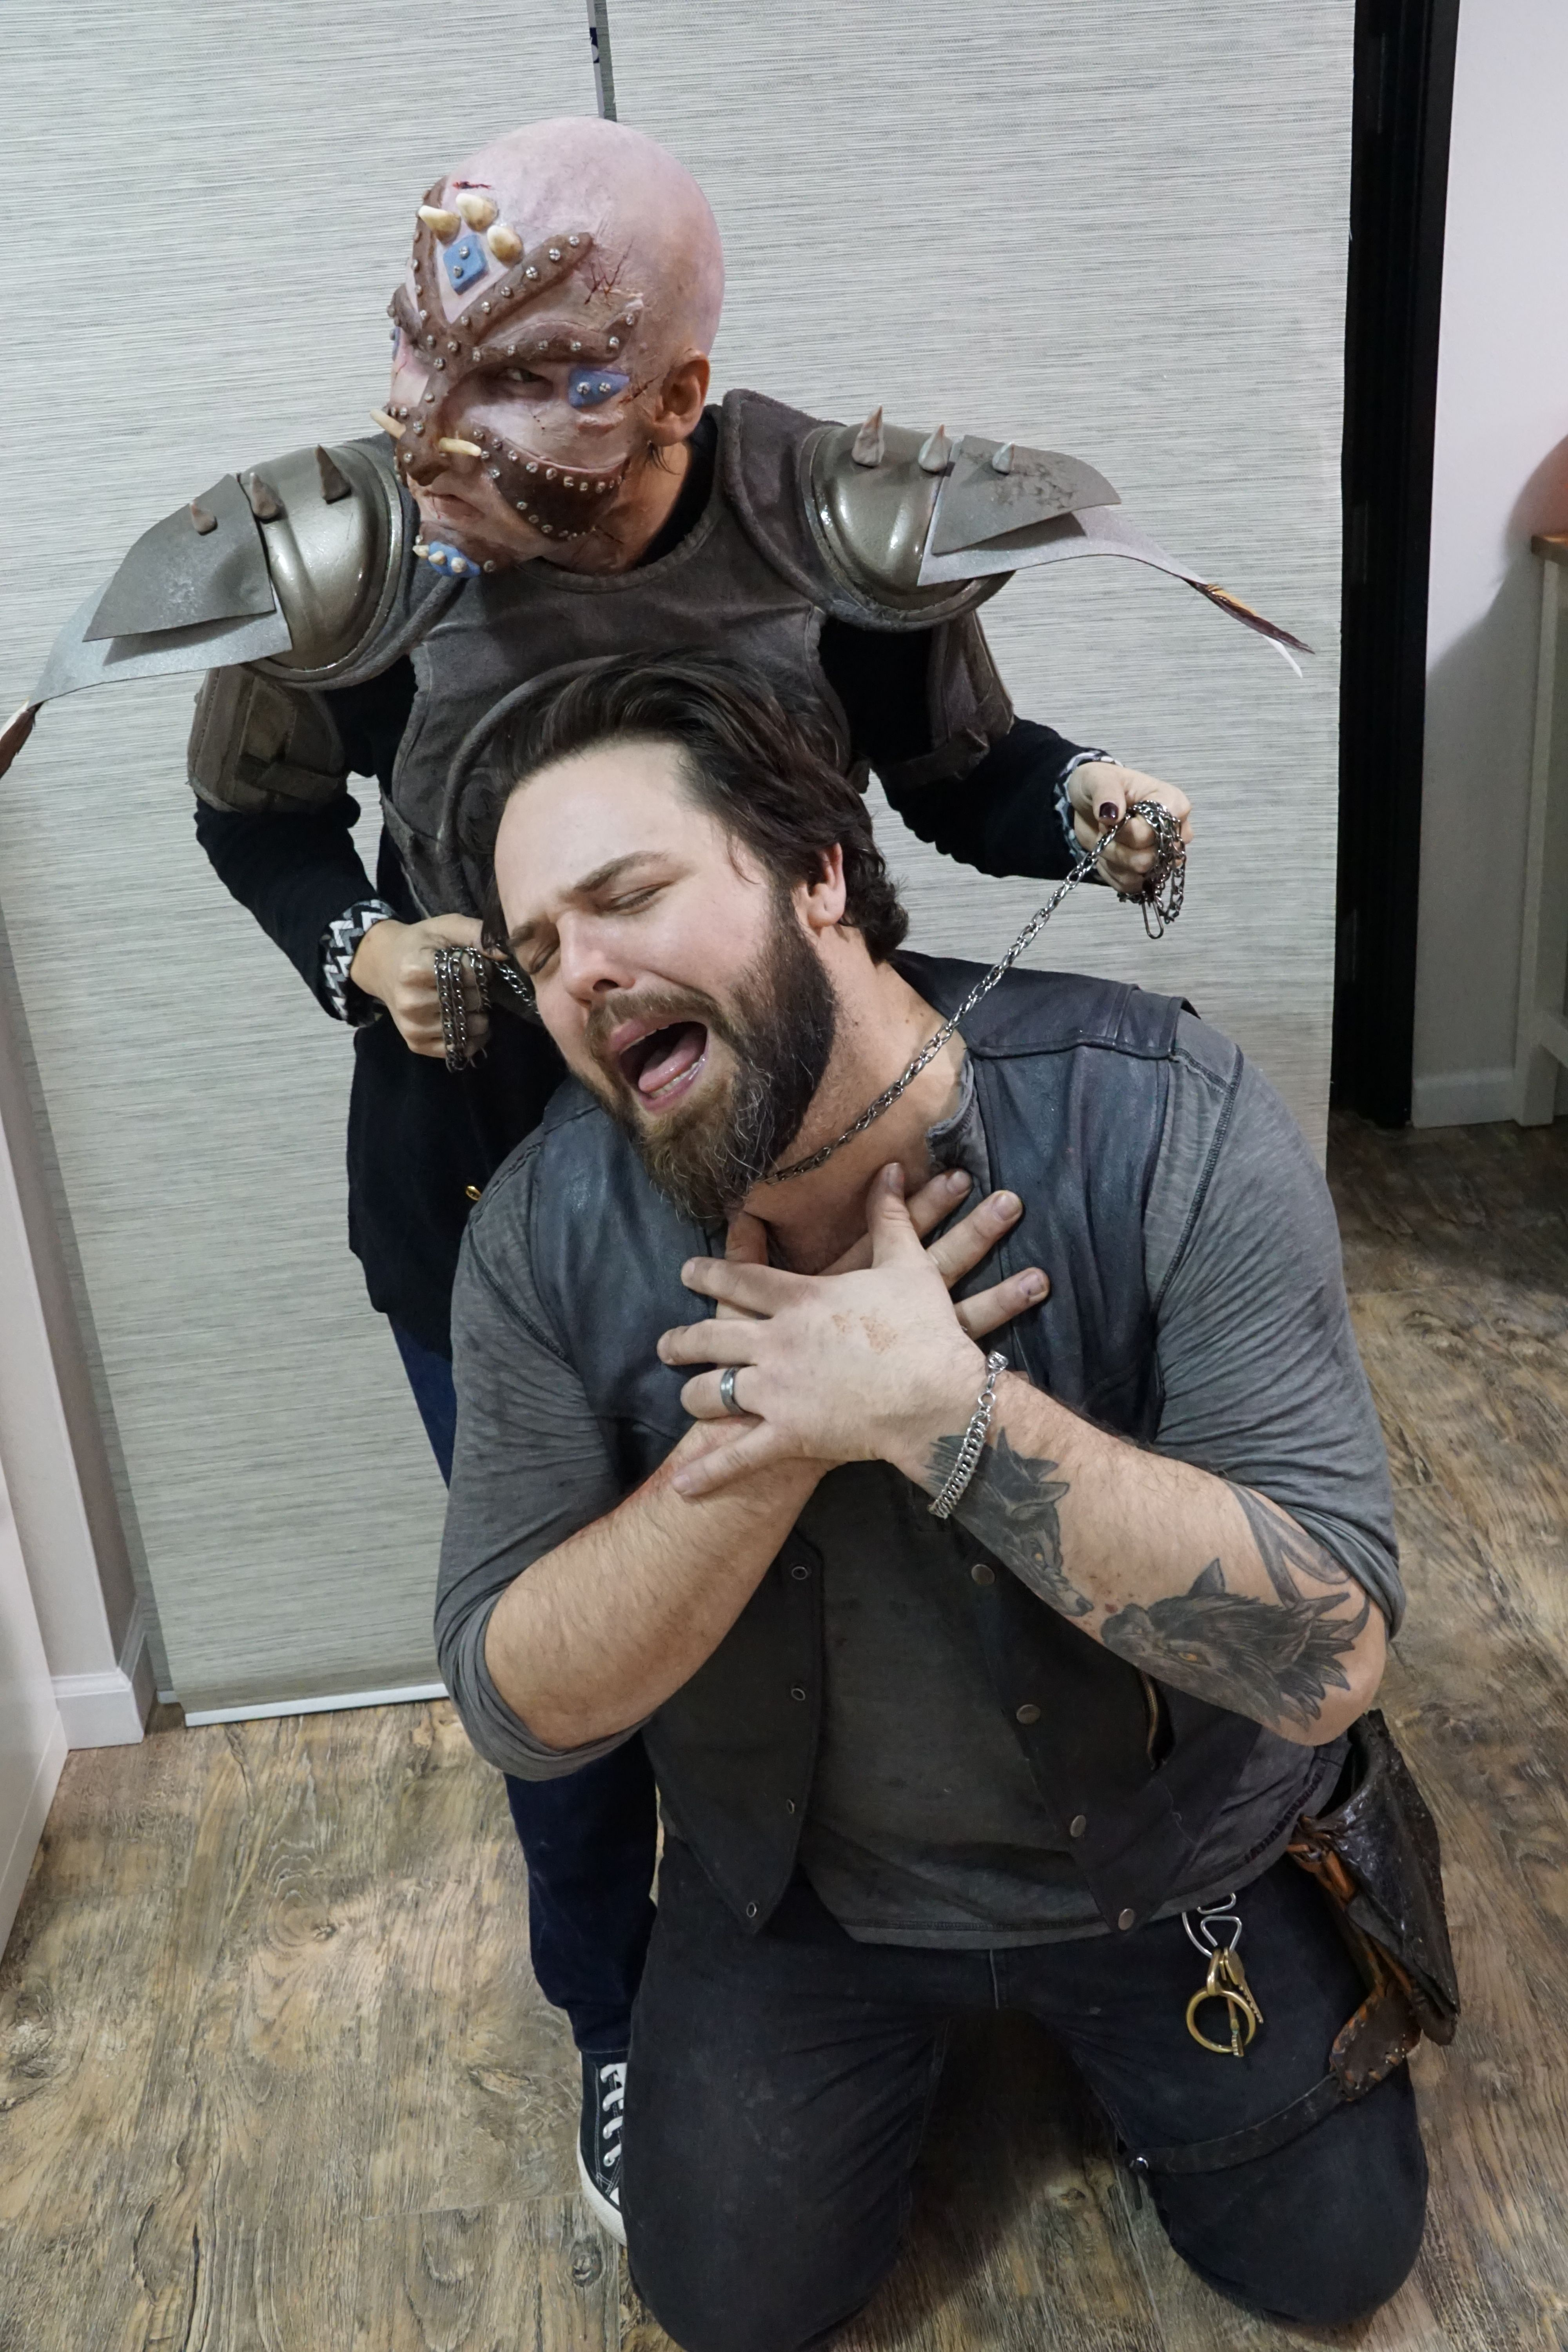 5 DAY SILICONE PROSTHETIC WITH FACE OFF'S TATE